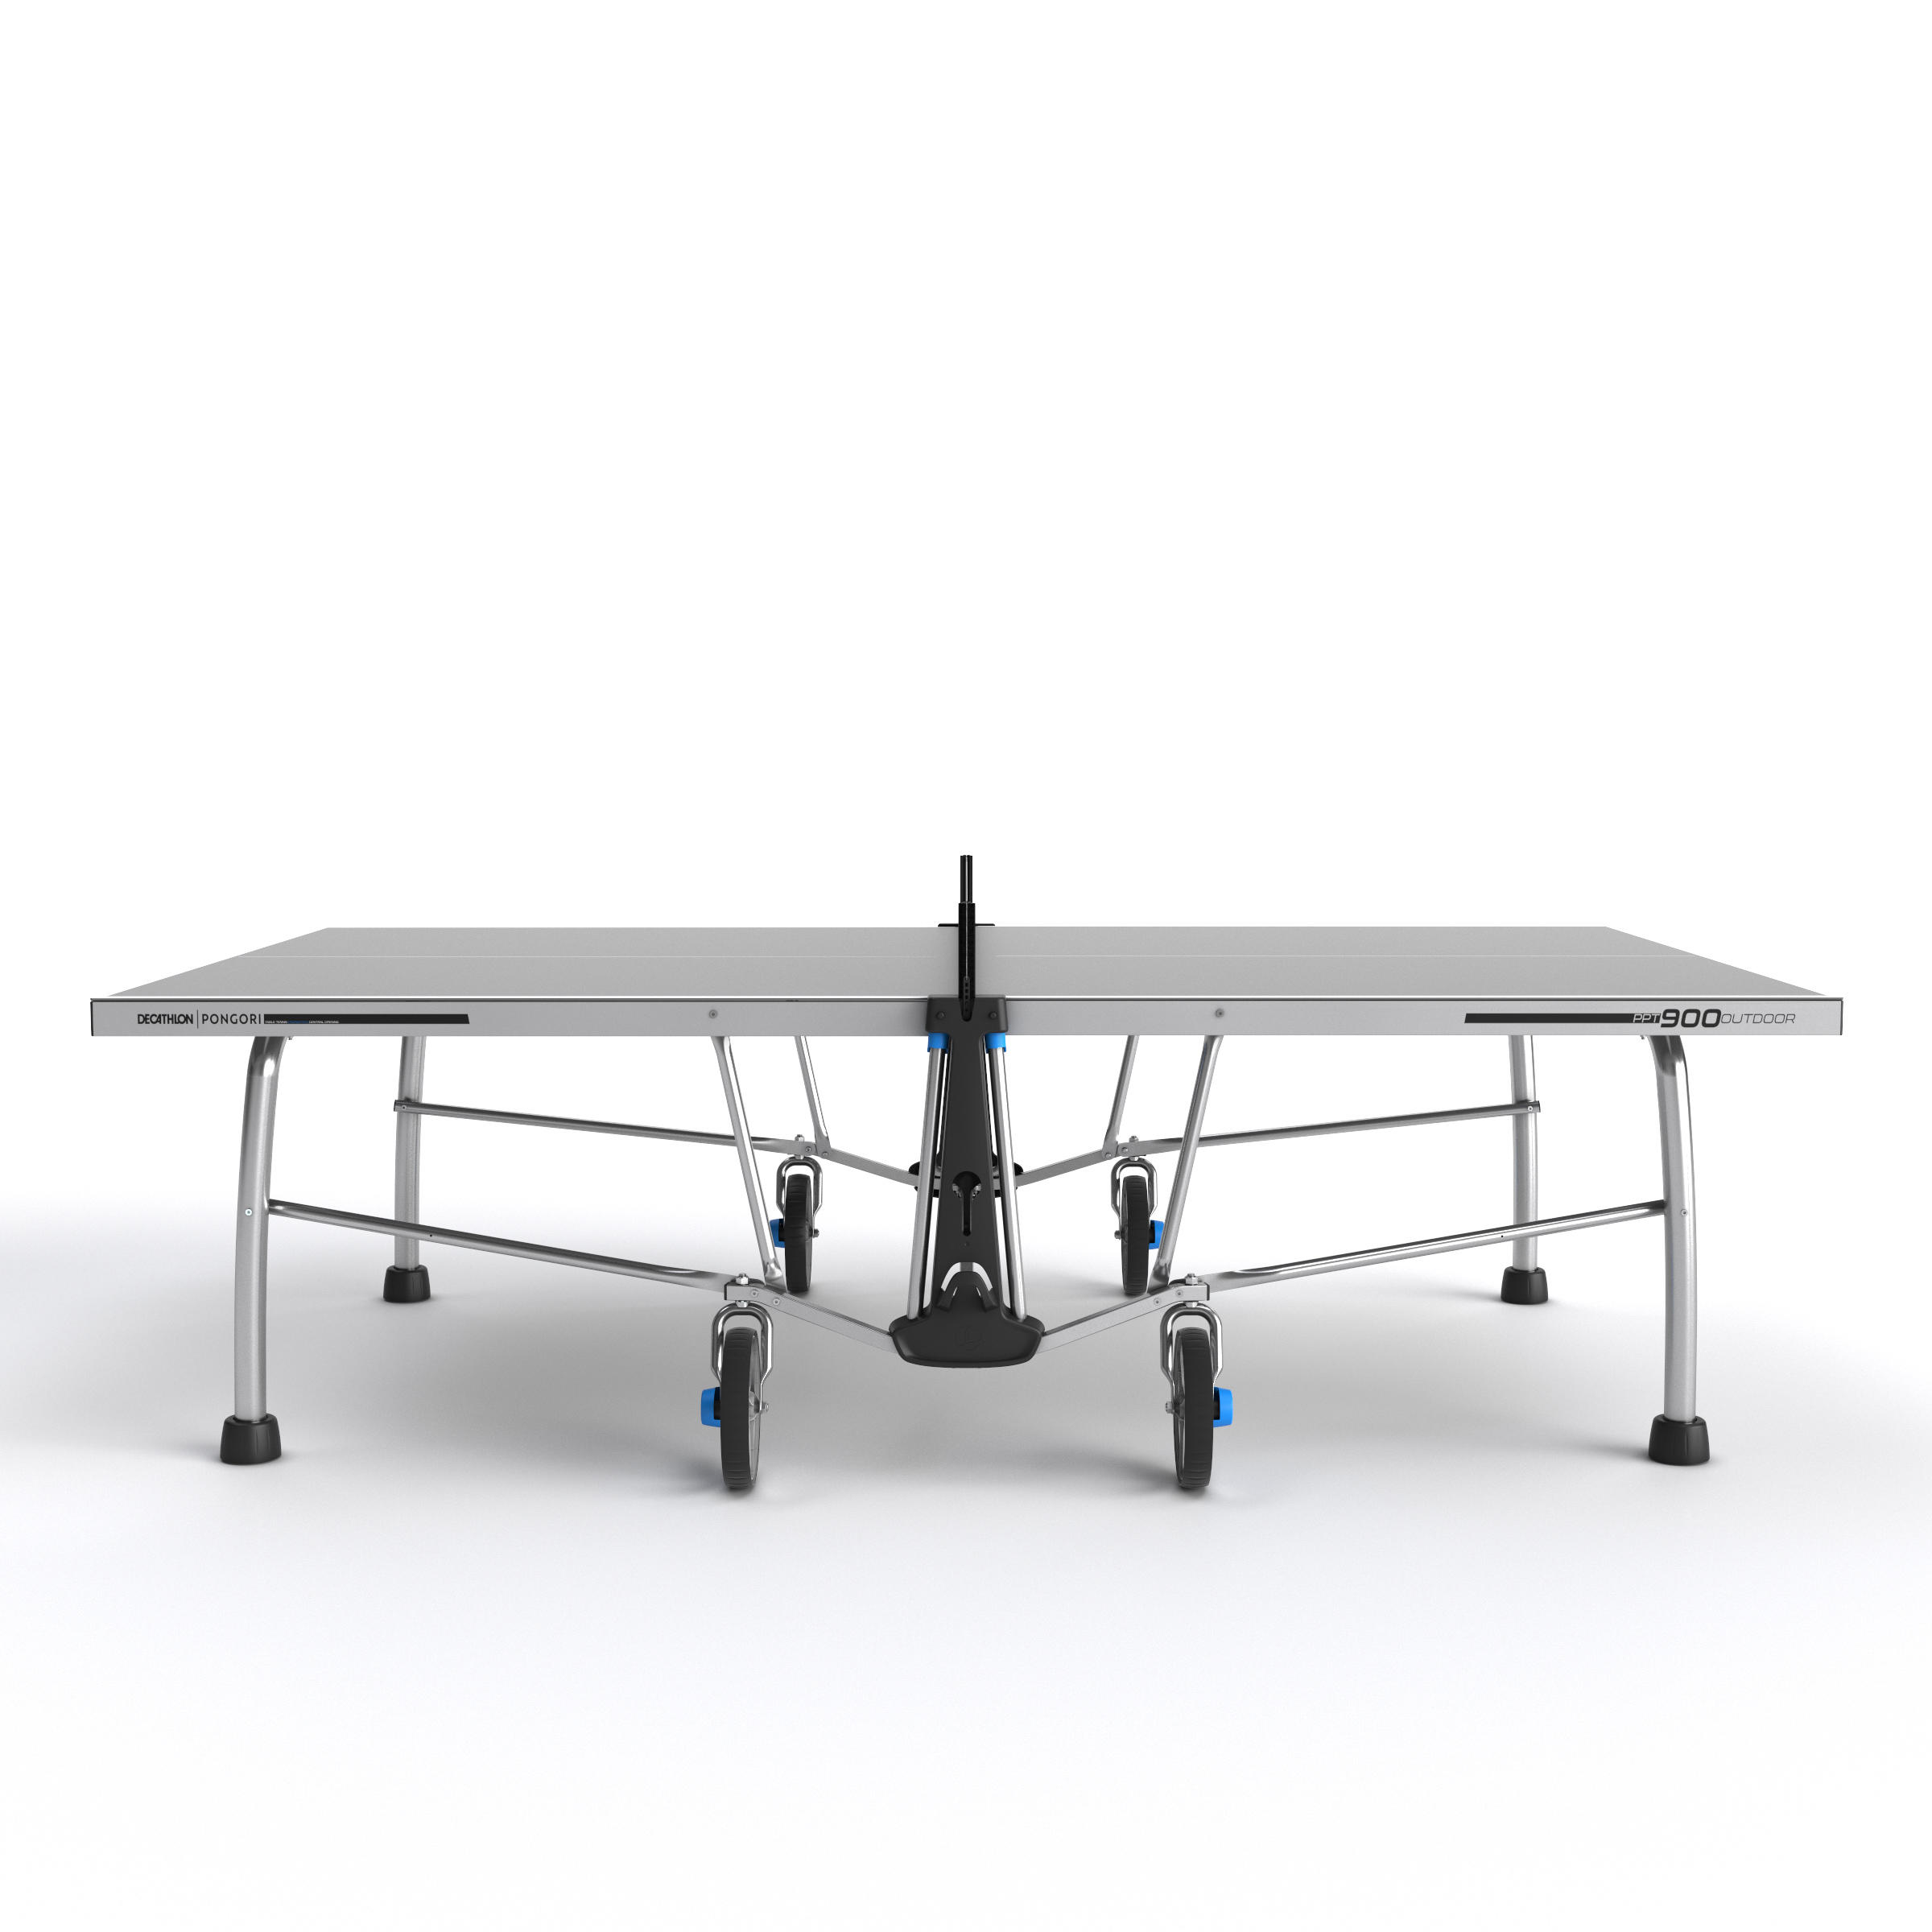 TABLE DE TENNIS DE TABLE FREE PPT 900 - FT 860 OUTDOOR